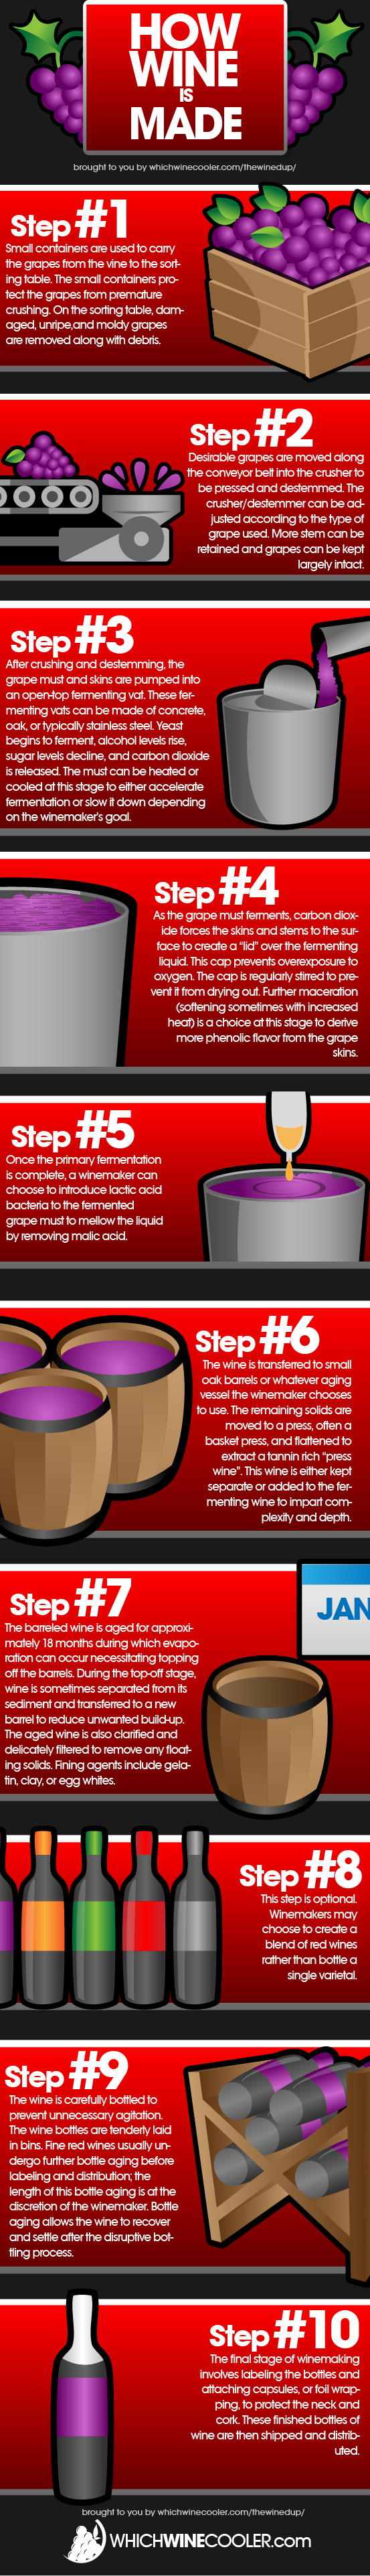 10 Steps to Making Red Wine